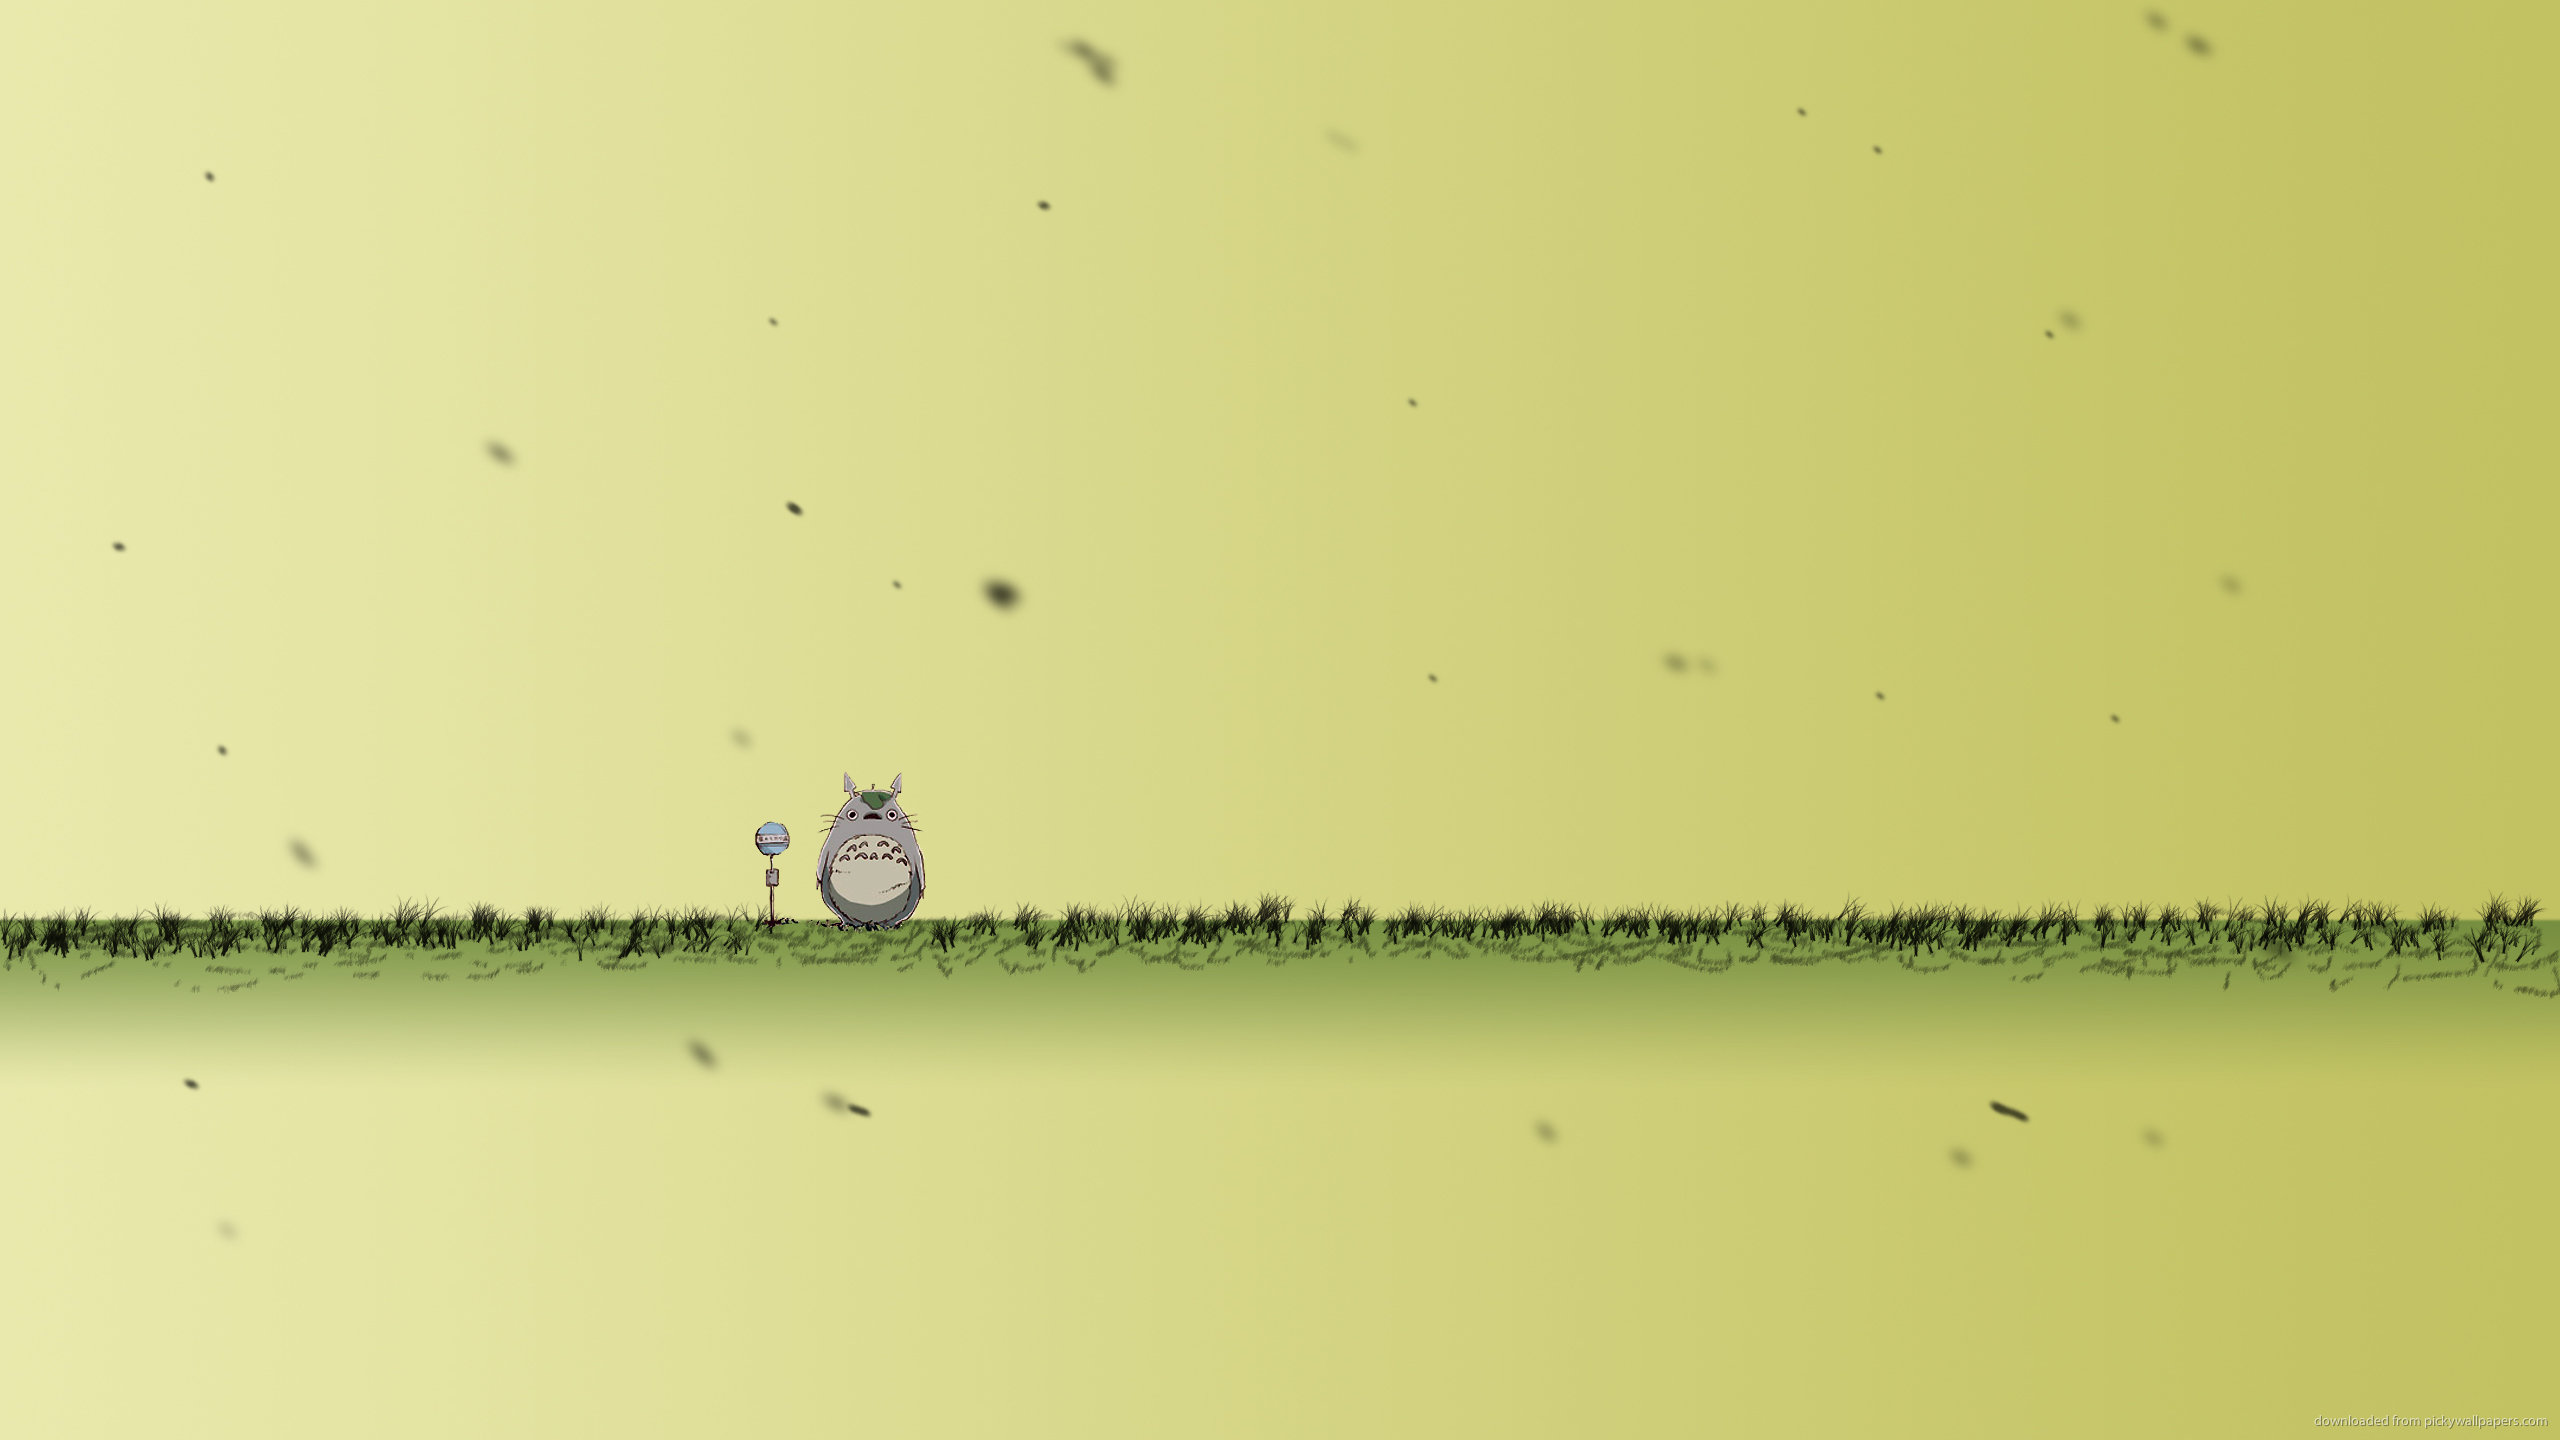 Free download My Neighbor Totoro background ID:259347 hd 2560x1440 for computer